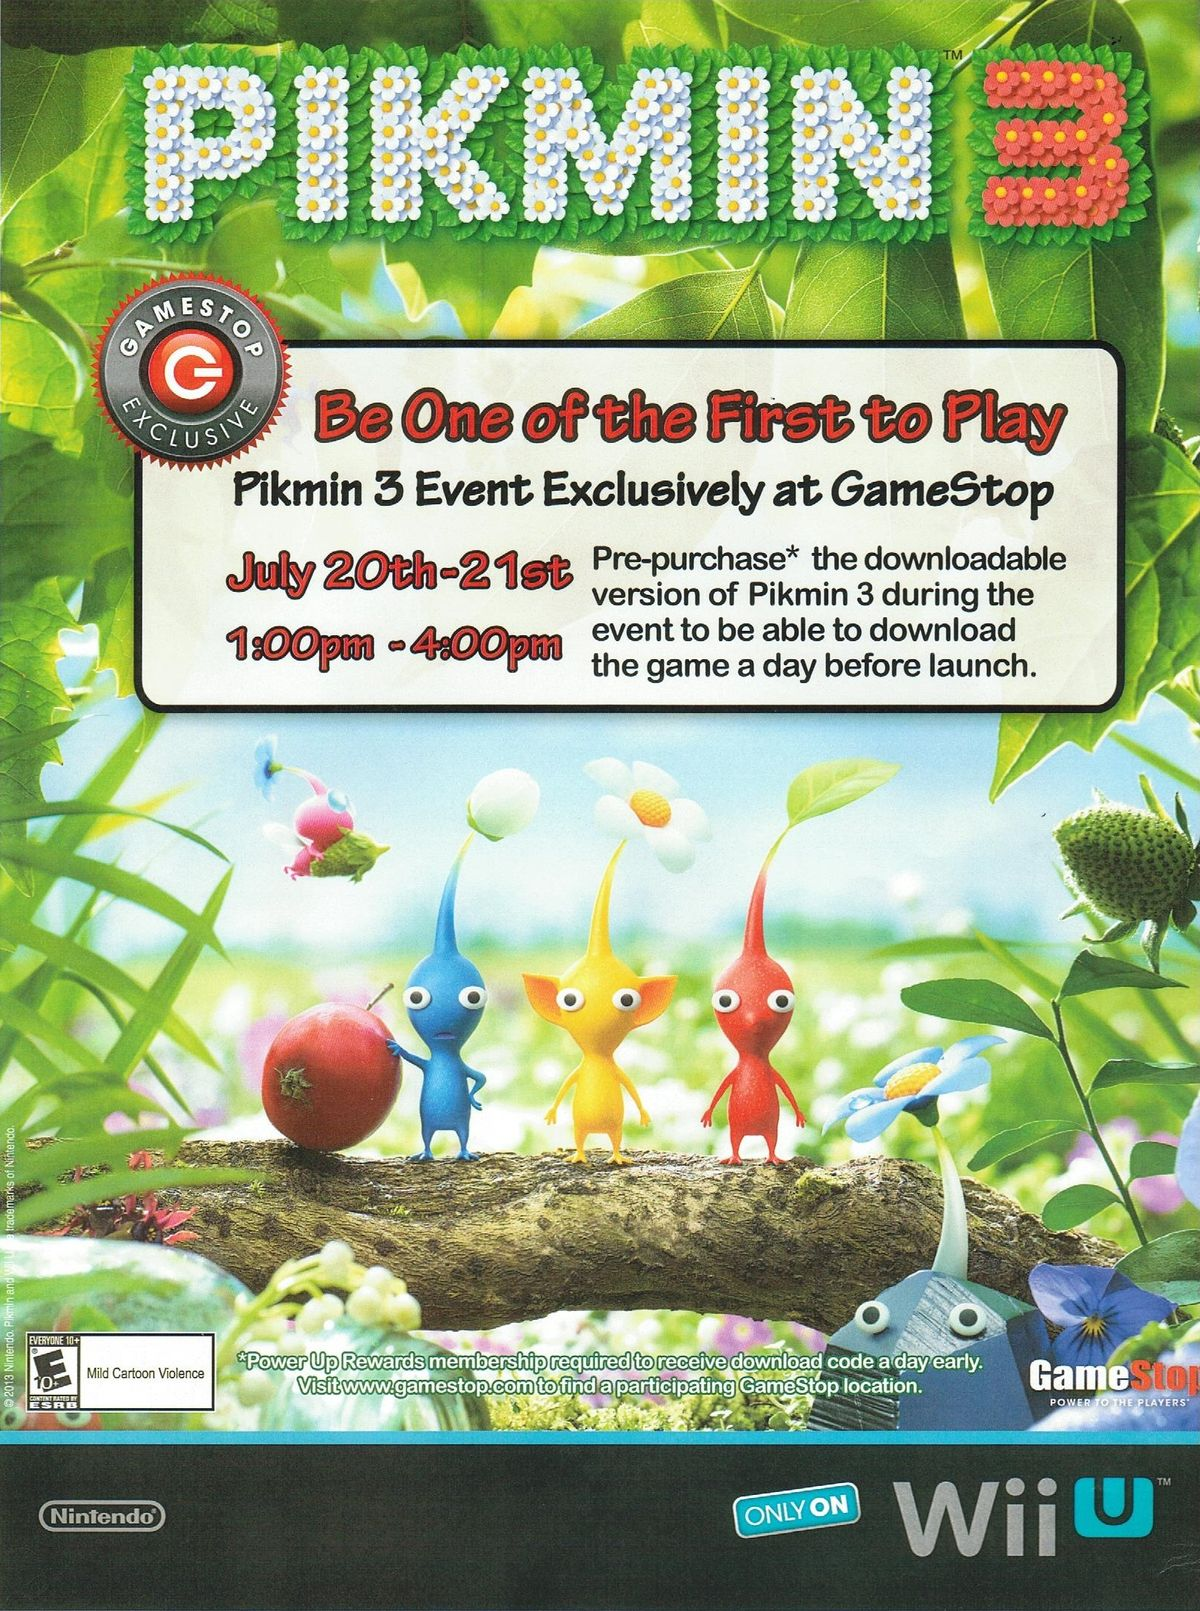 Pikmin 3 Gamestop Hands On Event Pikipedia The Pikmin Wiki